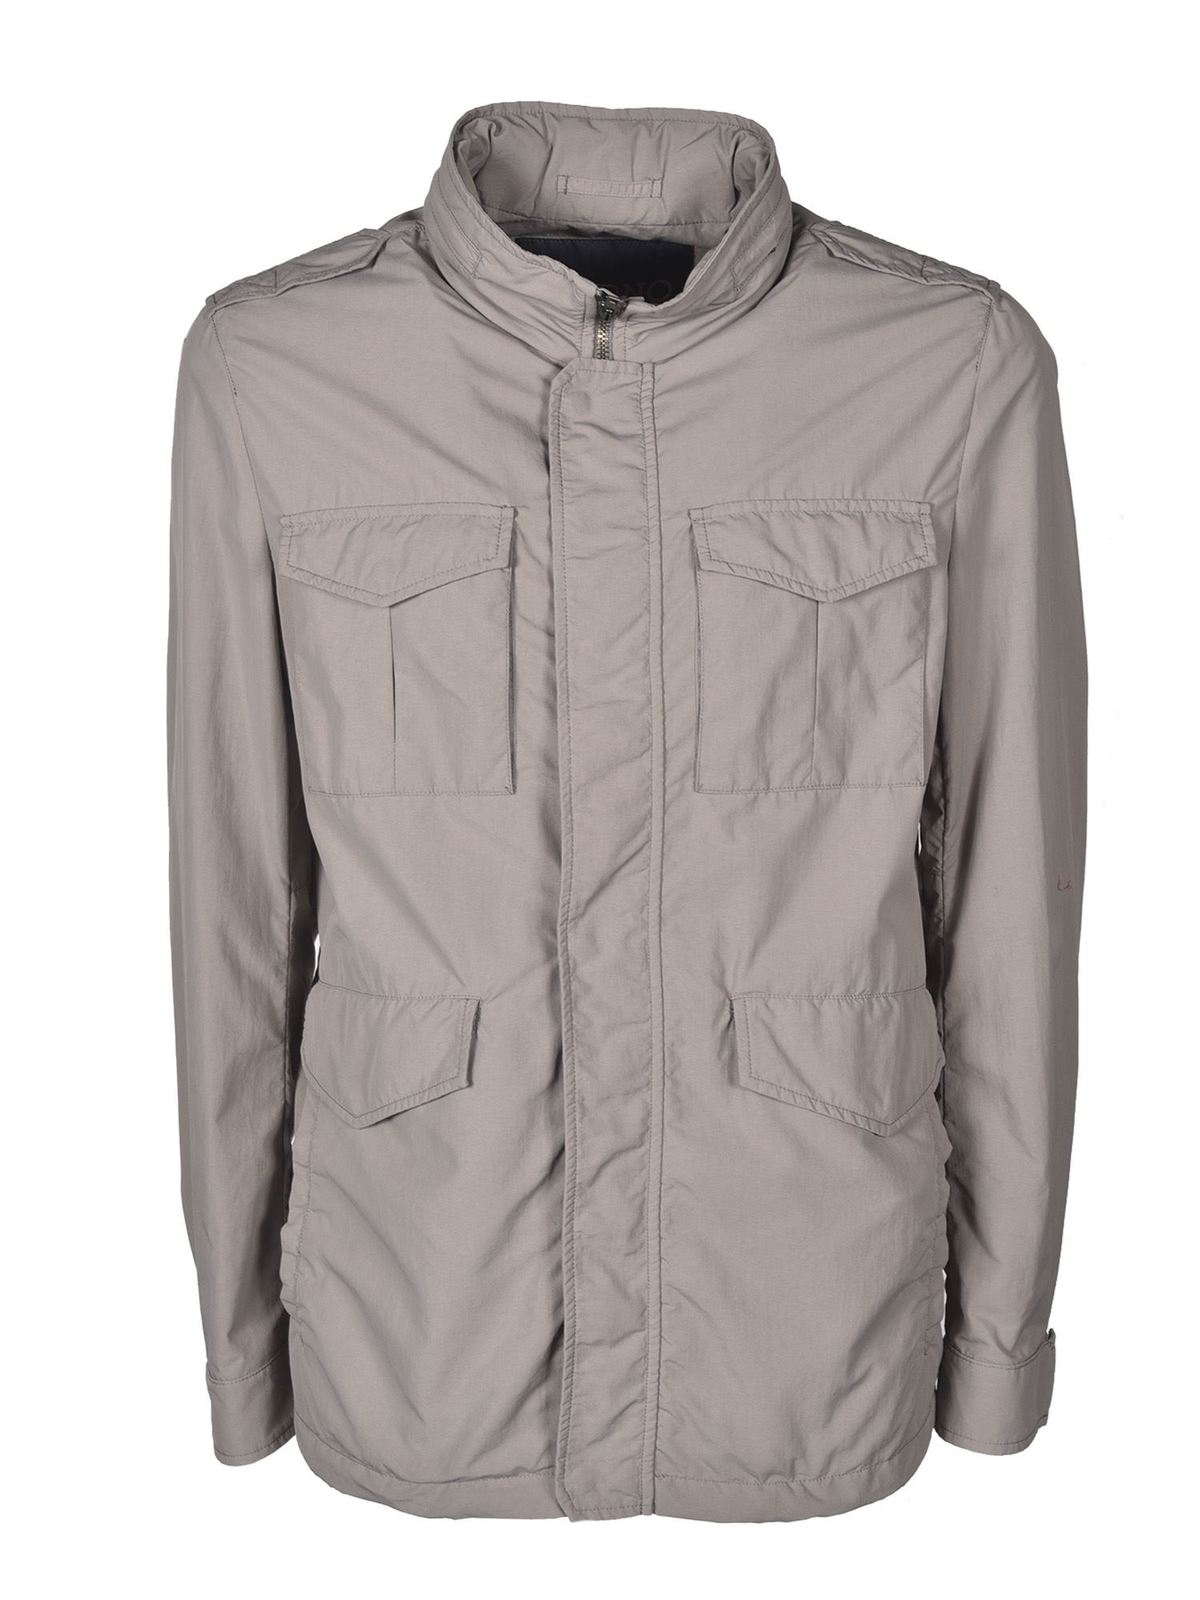 Herno FEEL JACKETS IN DOVE GREY